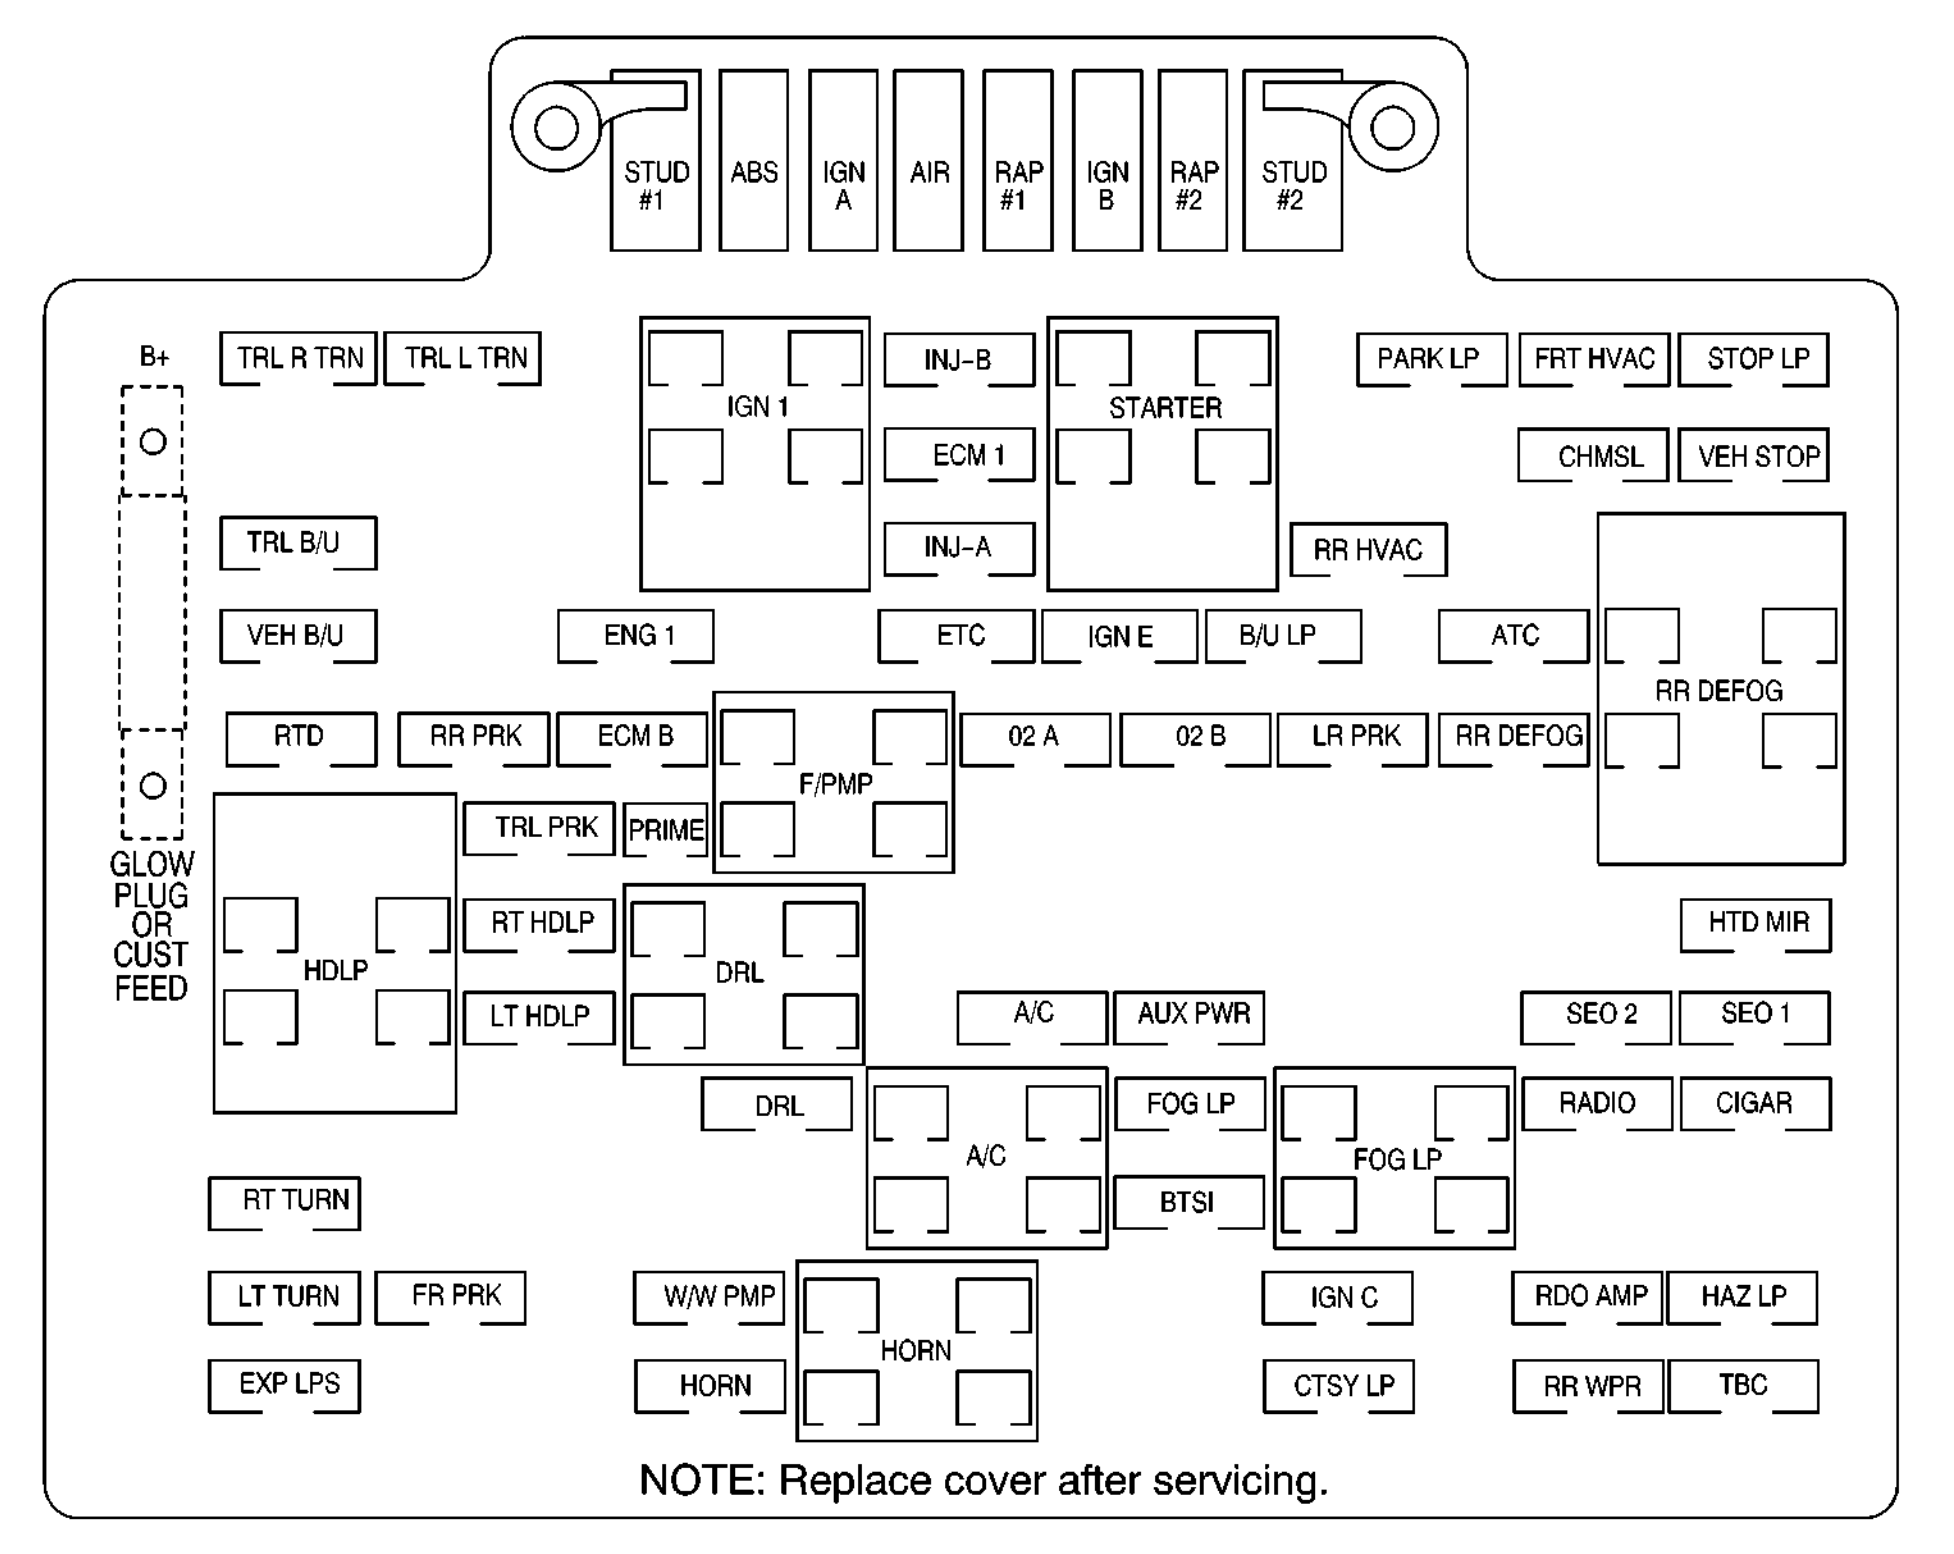 DIAGRAM 1957 Chevrolet Fuse Box Diagram FULL Version HD ...